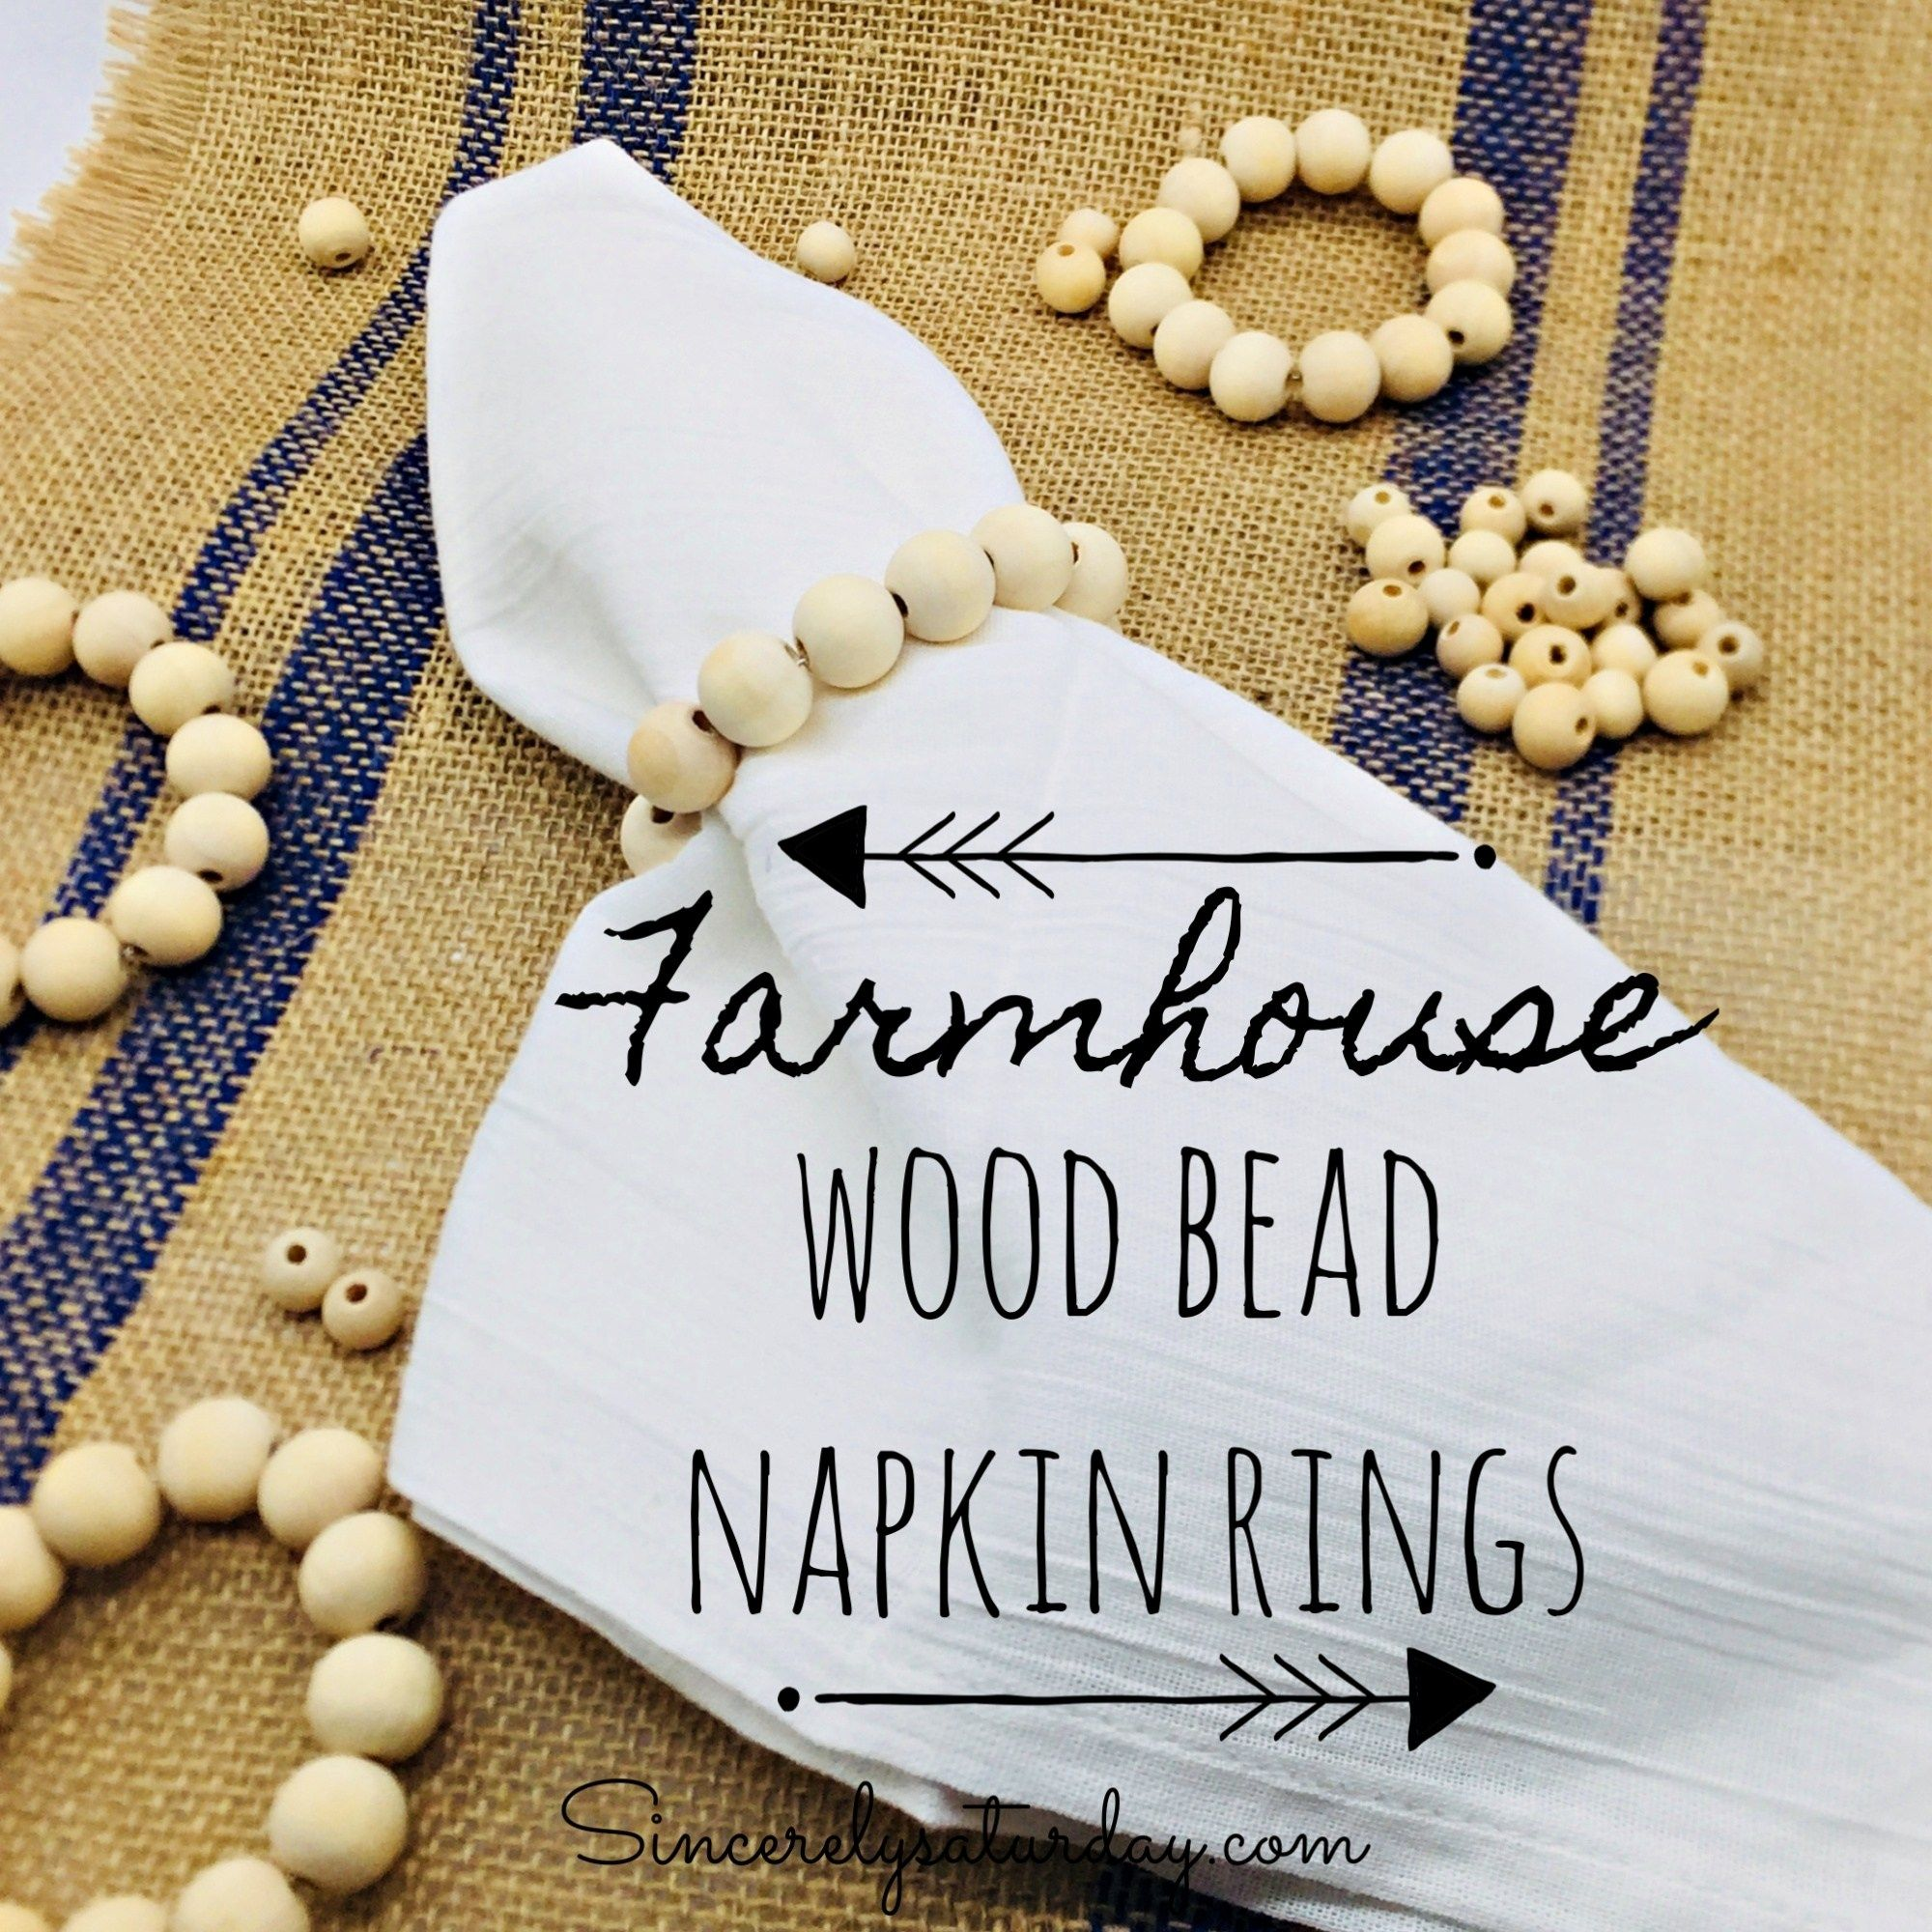 FARMHOUSE STYLE WOOD BEAD NAPKIN RINGS | Sincerely Saturday